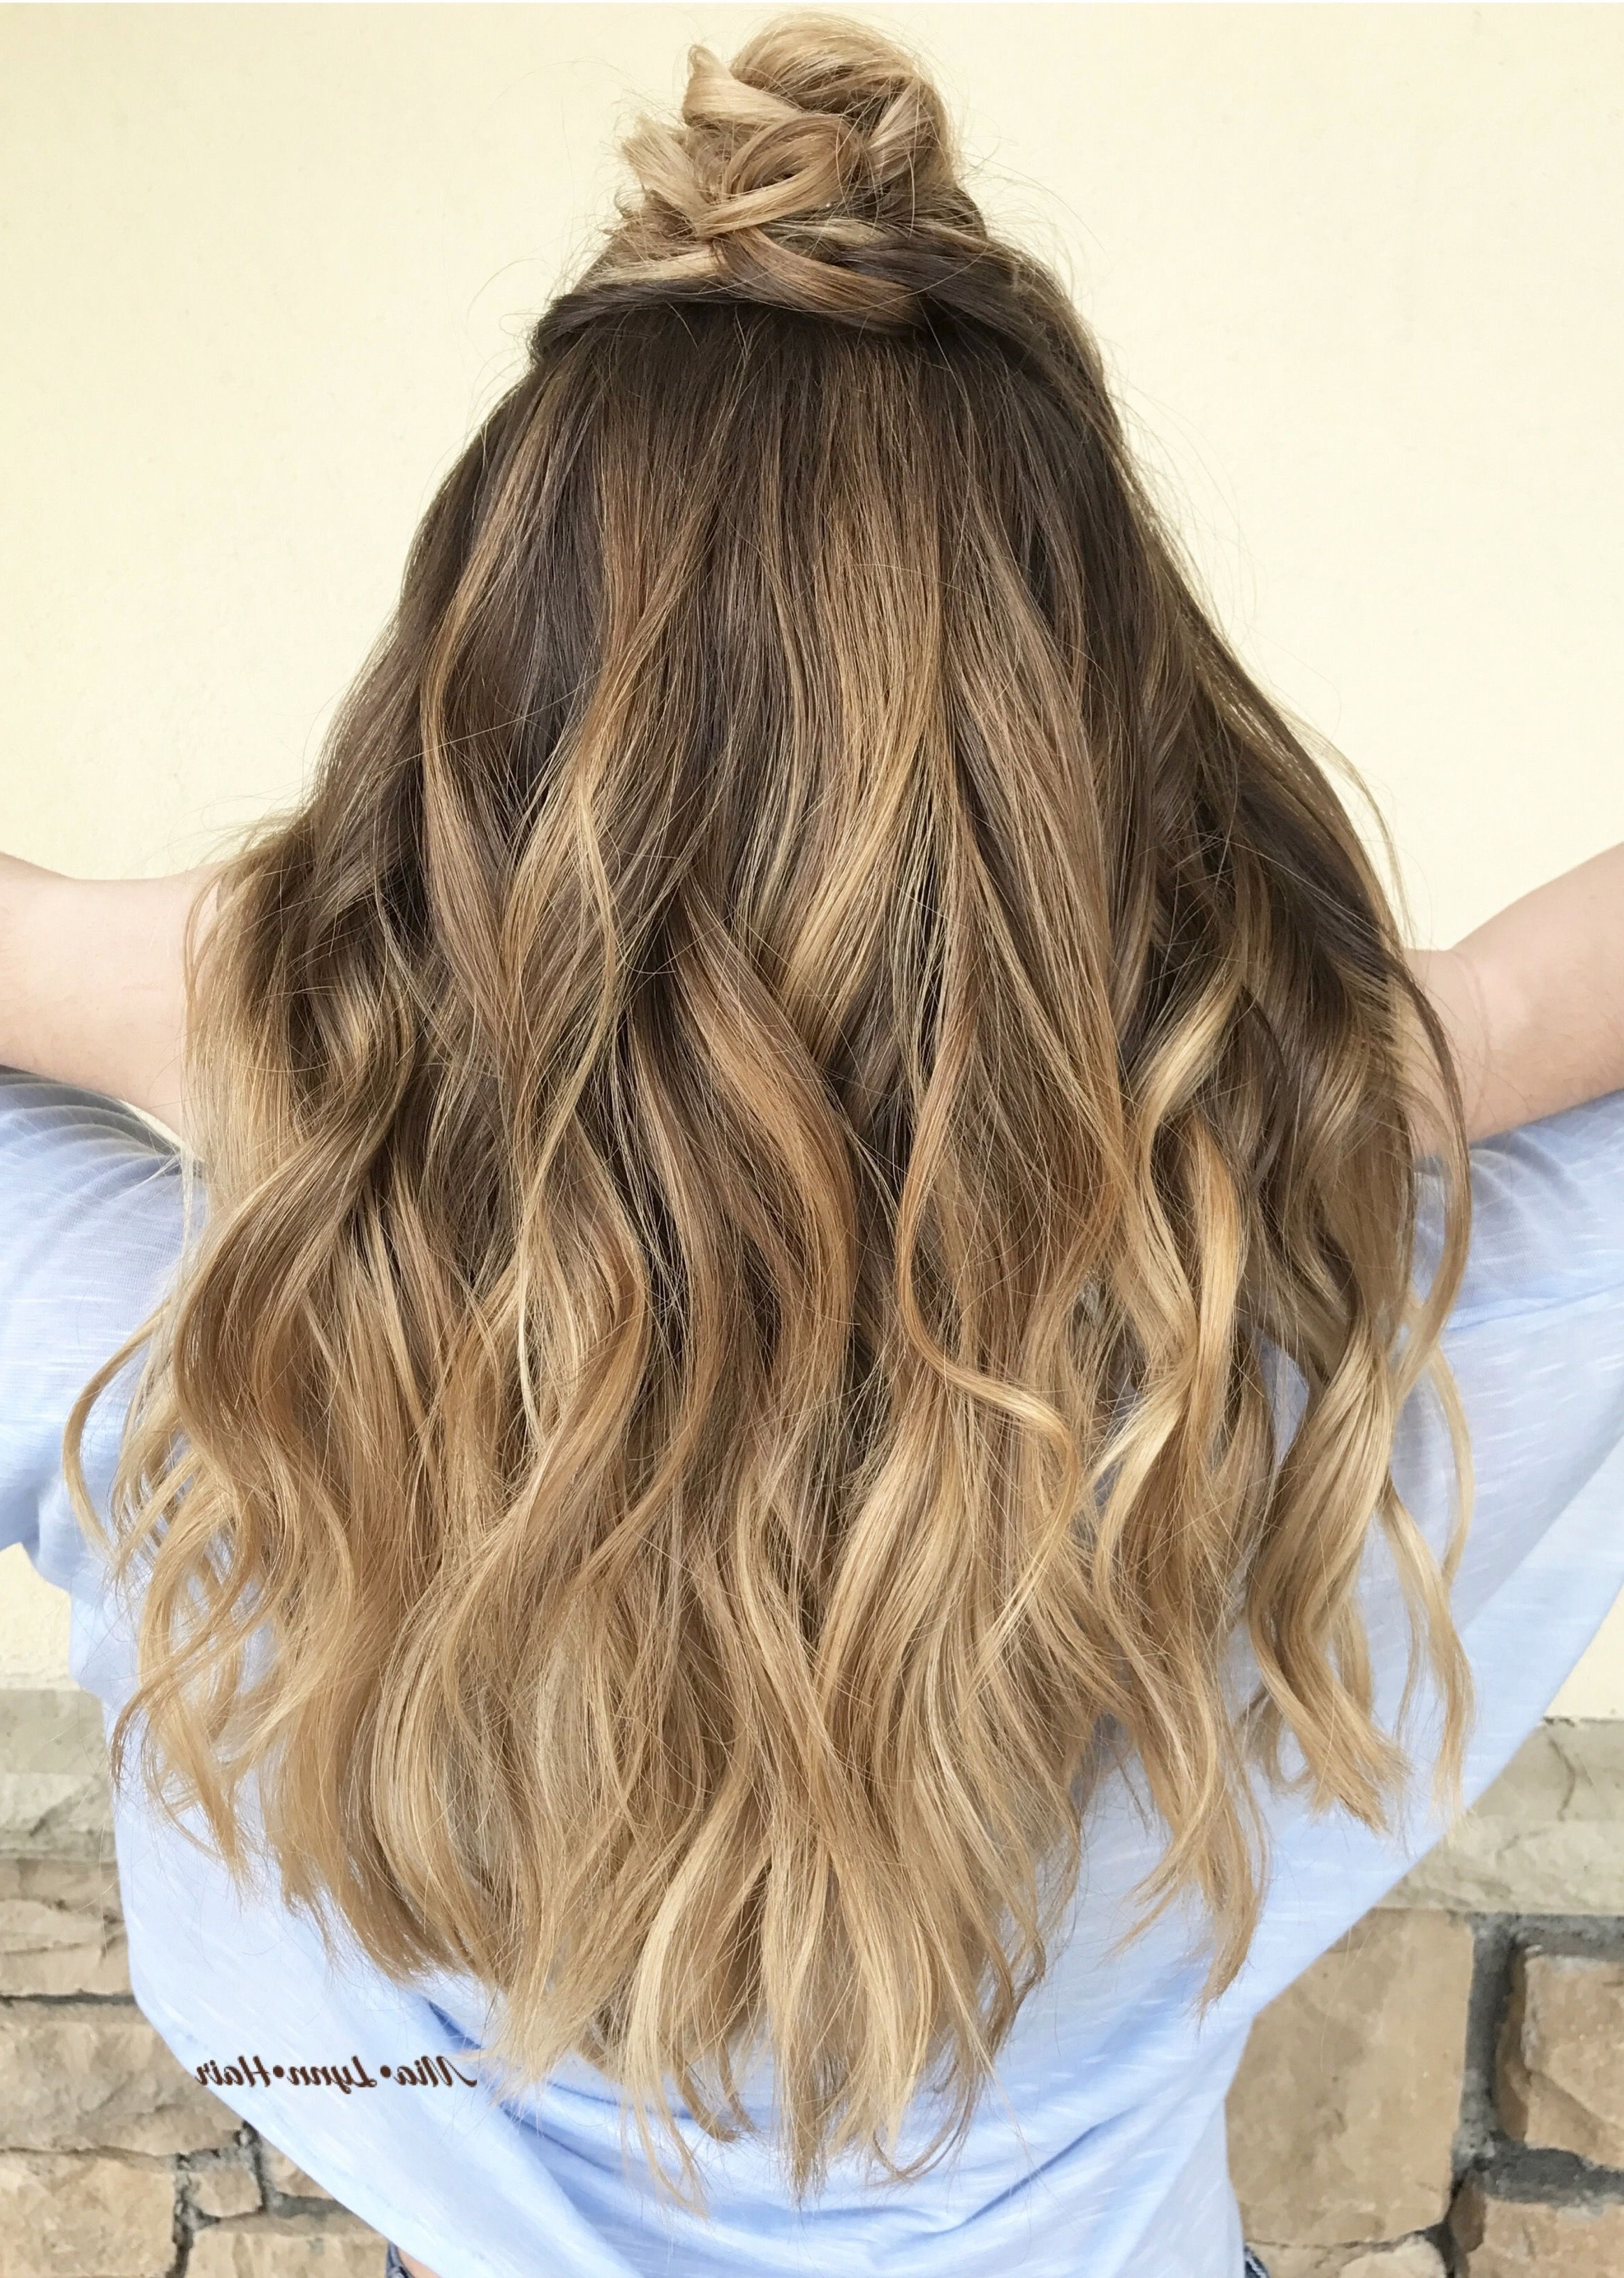 Balayage, Balayage Highlights, Brown Hair, Blonde Hair, Sombre, Warm Regarding Fashionable Loose Curls Blonde With Streaks (View 6 of 20)